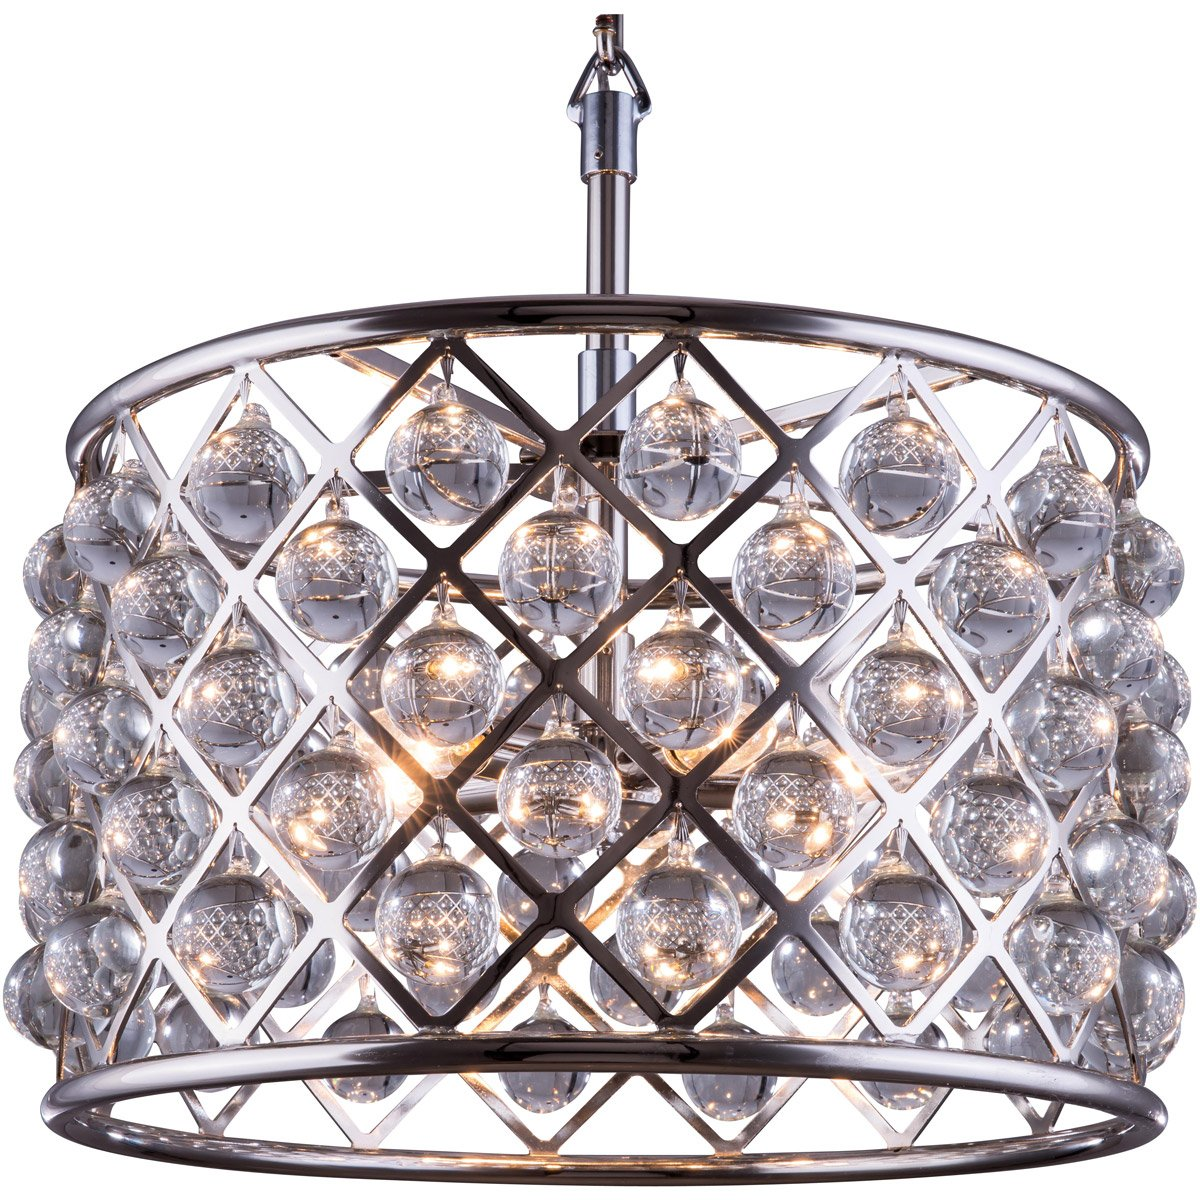 Madison 20 Crystal Pendant Chandelier With 6 Lights - Polished Nickel Finish Chandelier